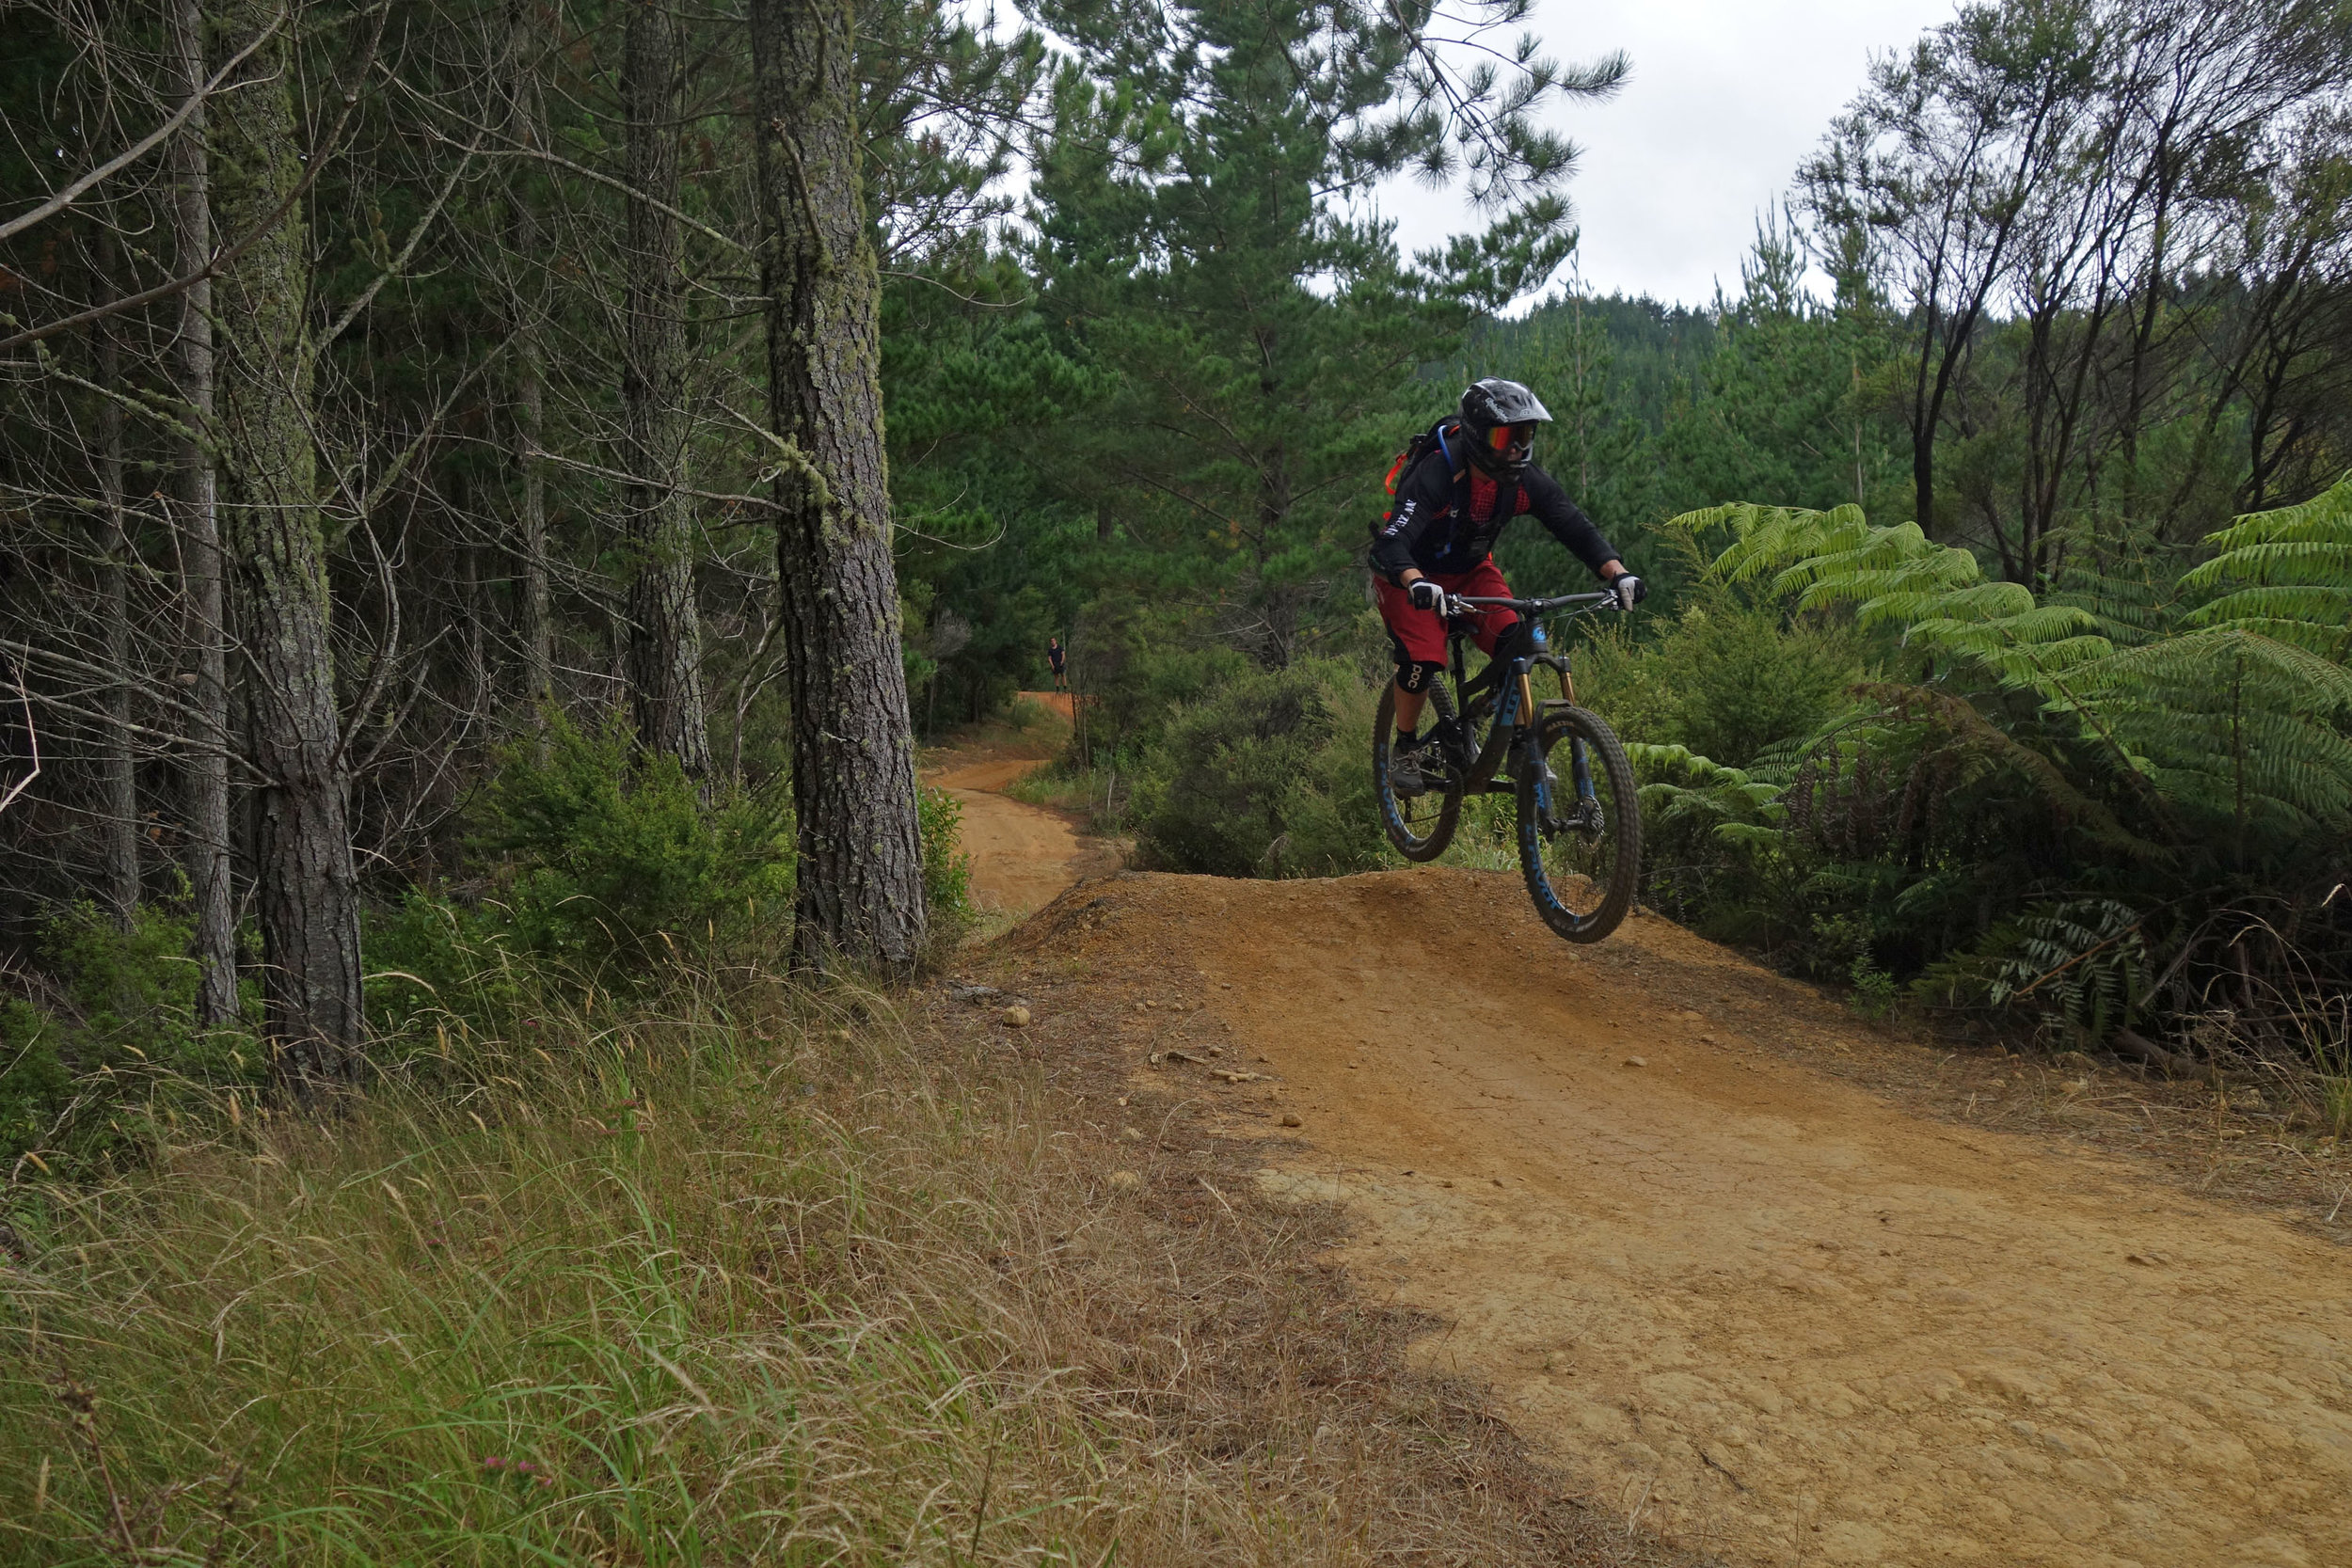 Mike was getting faster and going bigger with each run on his first day ever on his brand new Pivot Firebird.